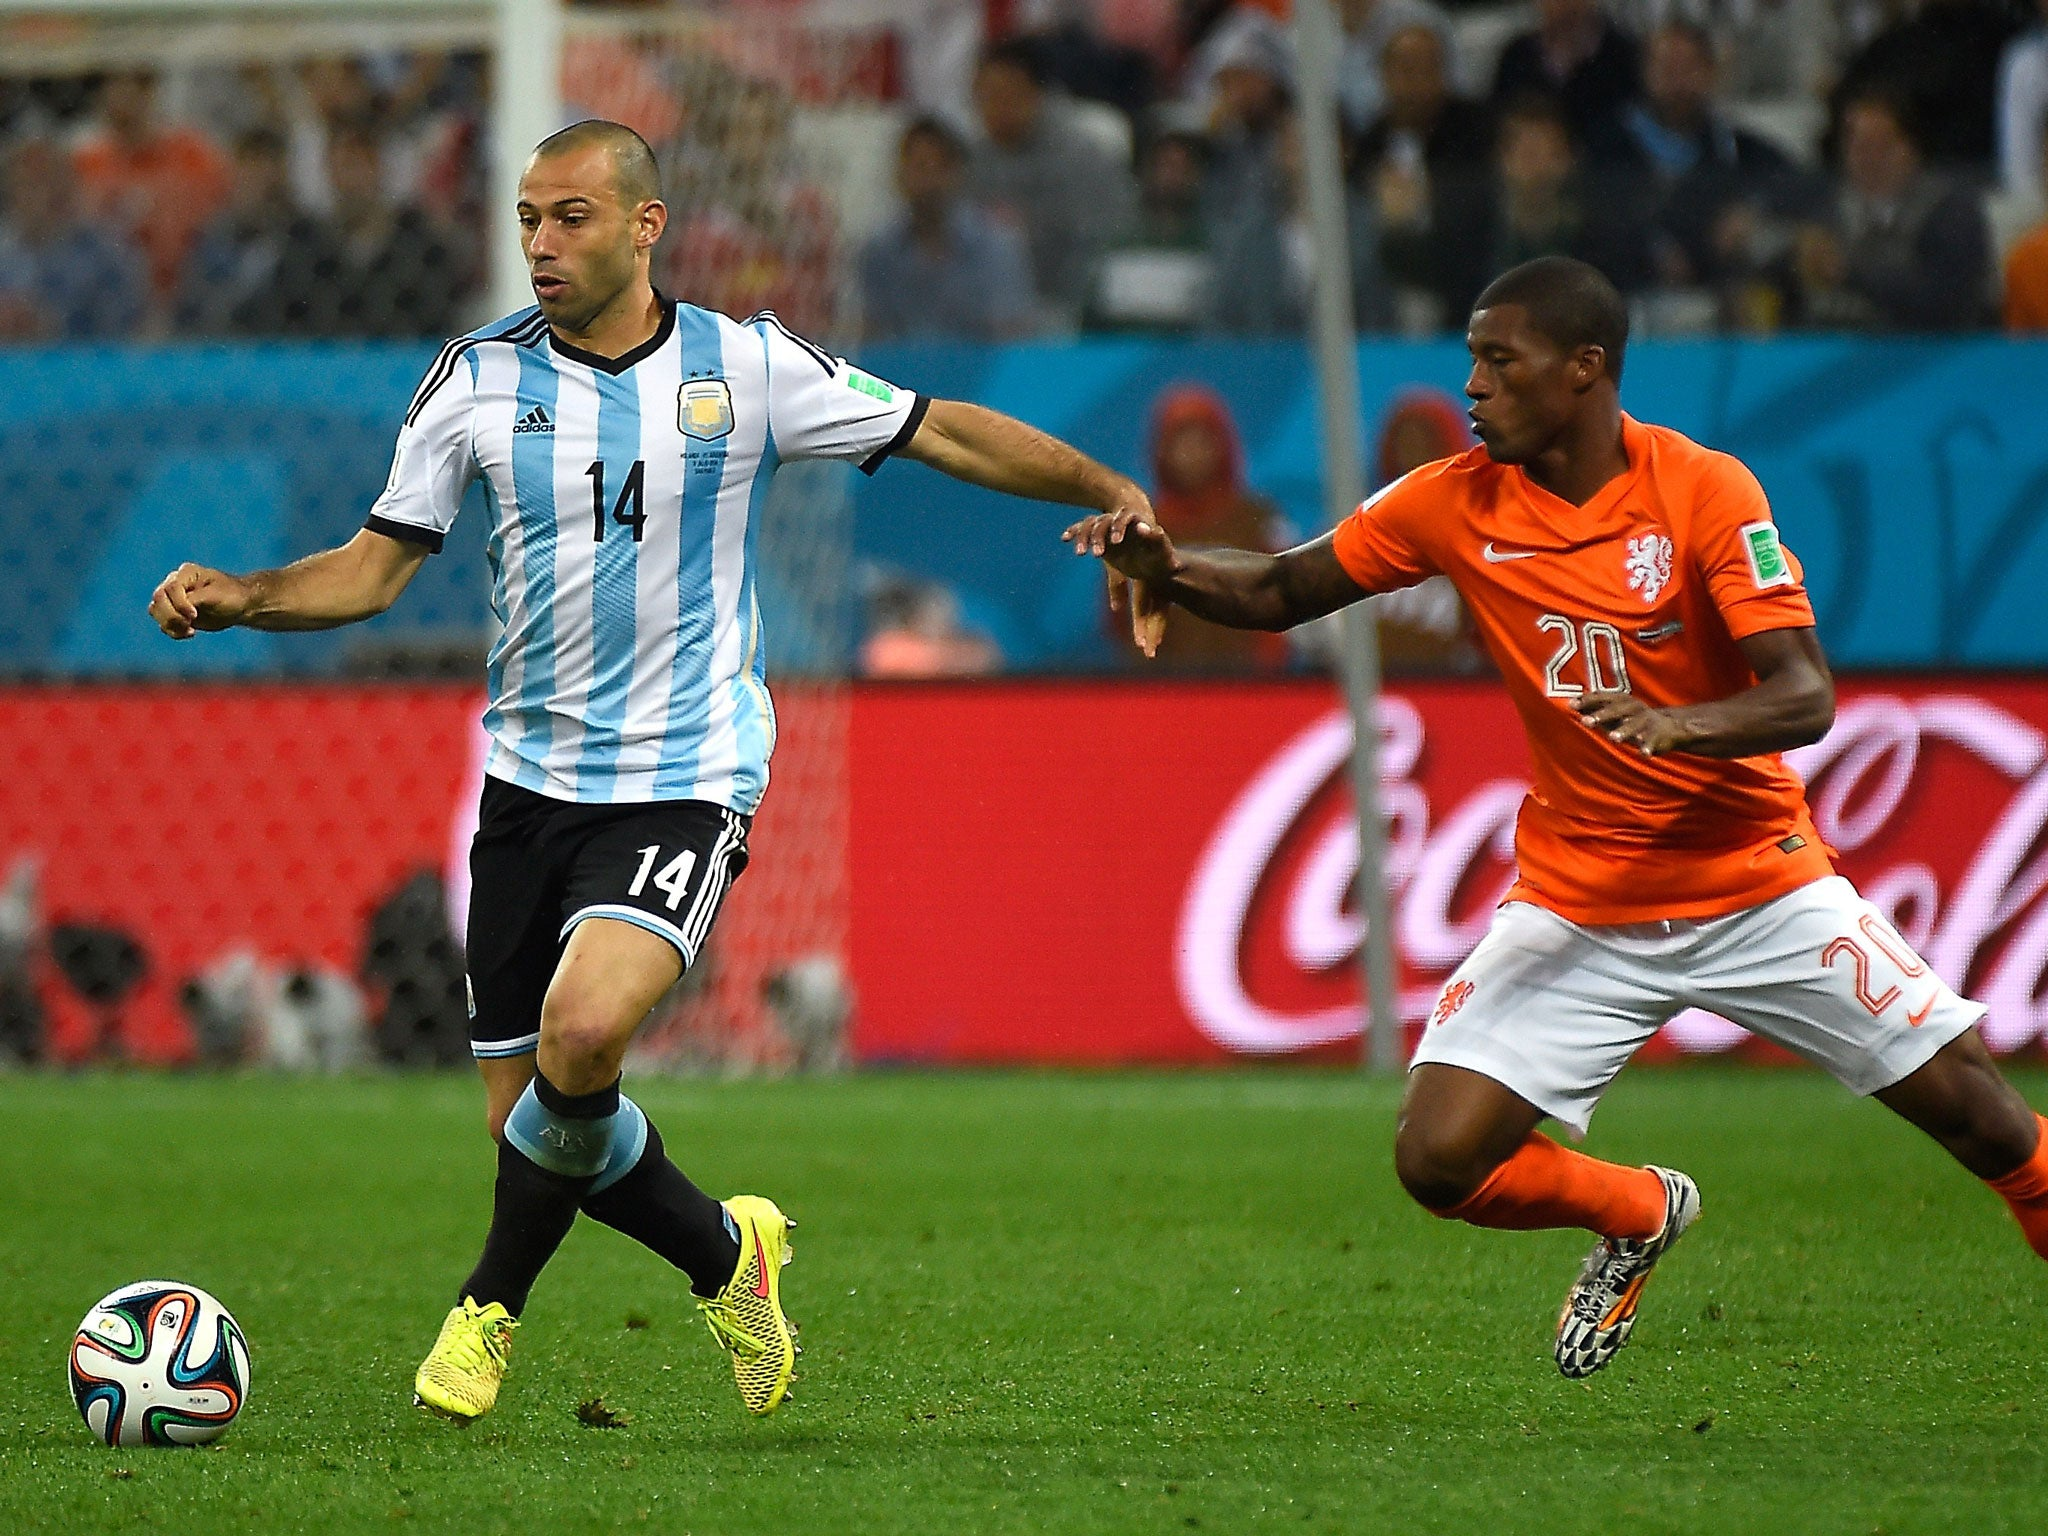 MASCHERANO SENT OFF FOR KICKING DRIVER DOWNLOAD